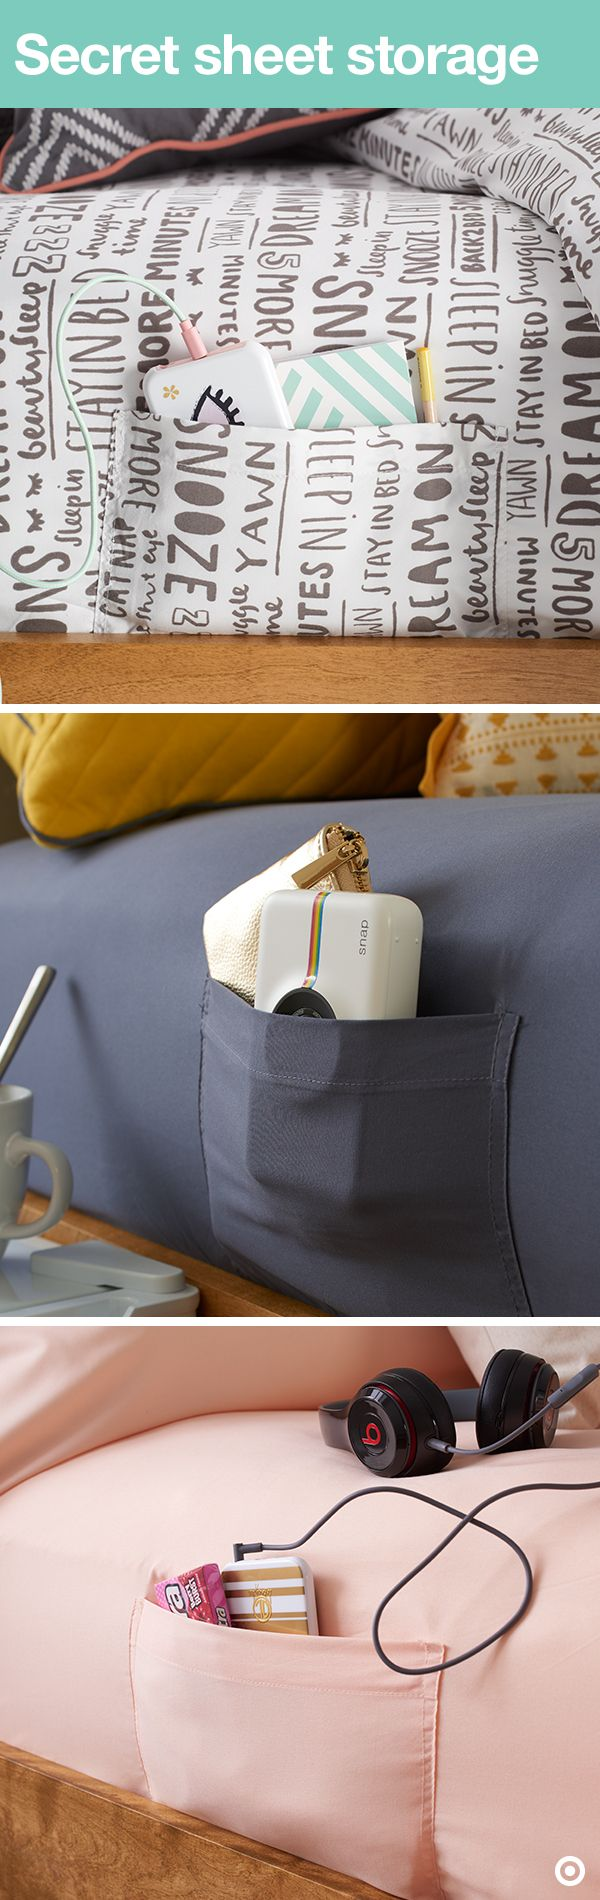 A fitted XLT sheet + awesome side pocket = a match made in bedding heaven. These sheets hold all your essentials close, like your phone, earbuds, remote and dream journal. Plus, you can hide your favorite things by pulling the comforter over the side (aka making your bed!). It's a real shared space must-have. TIP: Dorm room beds are longer than your average twin. When dorm shopping, look for XLT on sheet packaging. These babies are made specifically for dorm life.